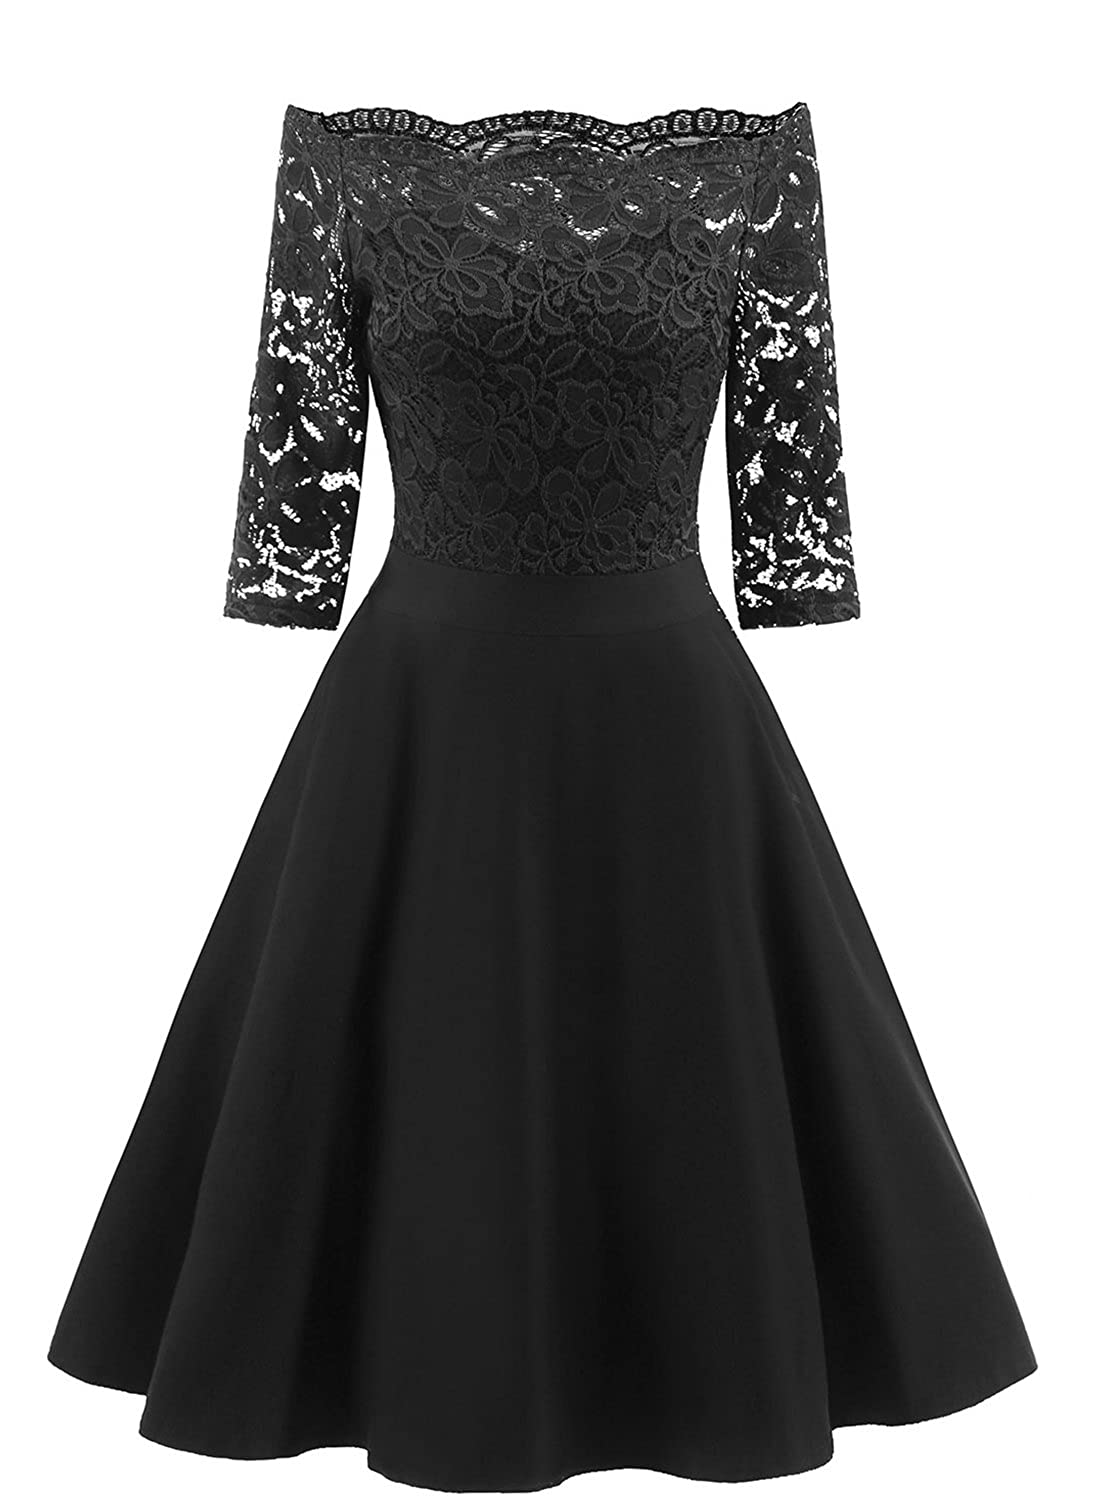 b90c4a44219 Made in USA and Imported Women Vintage Floral Lace 1 2 Sleeve Boat Neck  Elegant Cocktail Swing Dresses DESIGN  Vintage floral lace cocktail party  swing ...